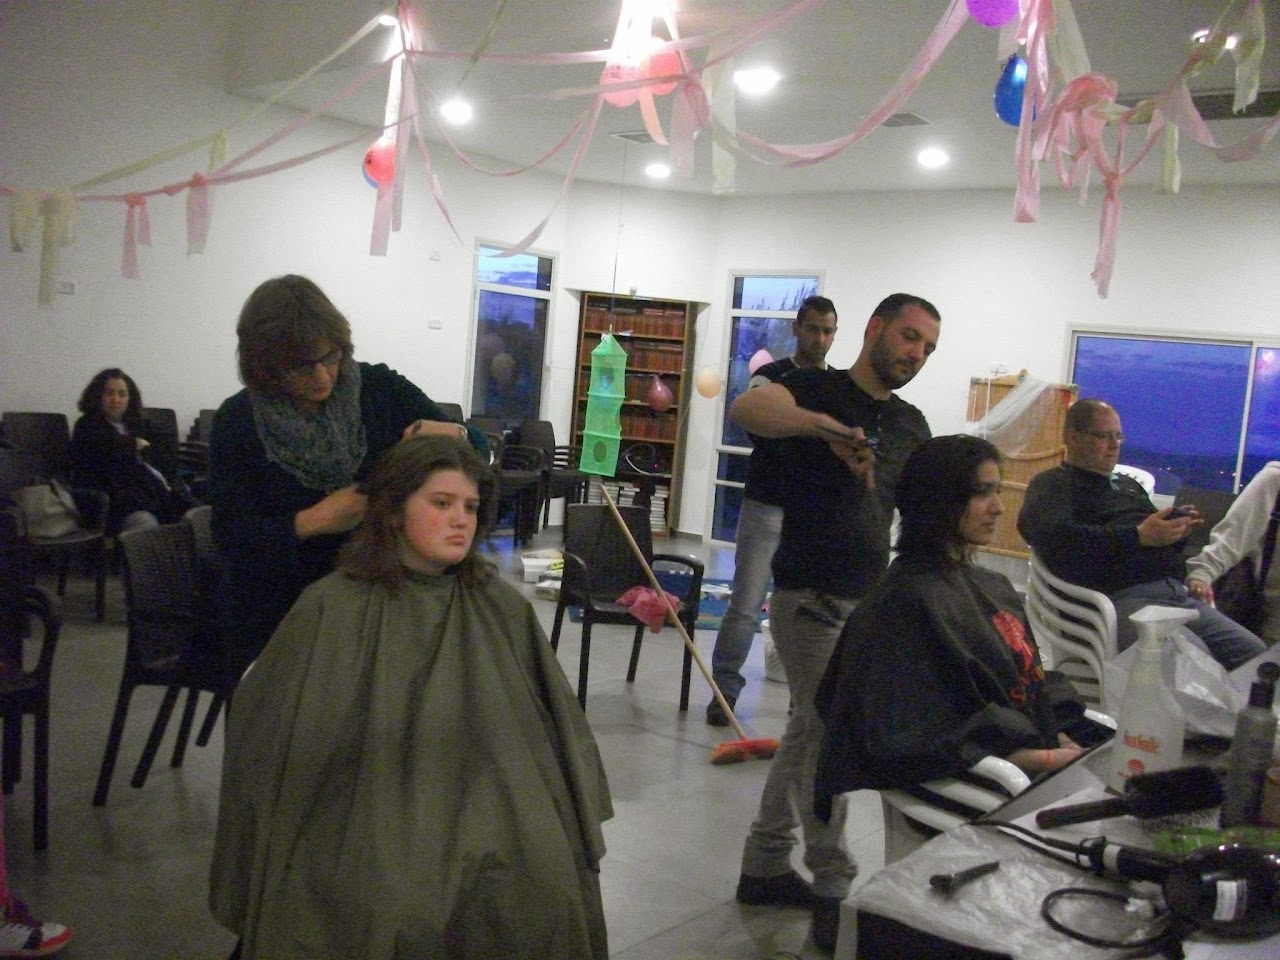 Donating hair for cancer patients 2014  - 1979932_539678182815146_1523703536_o.jpg